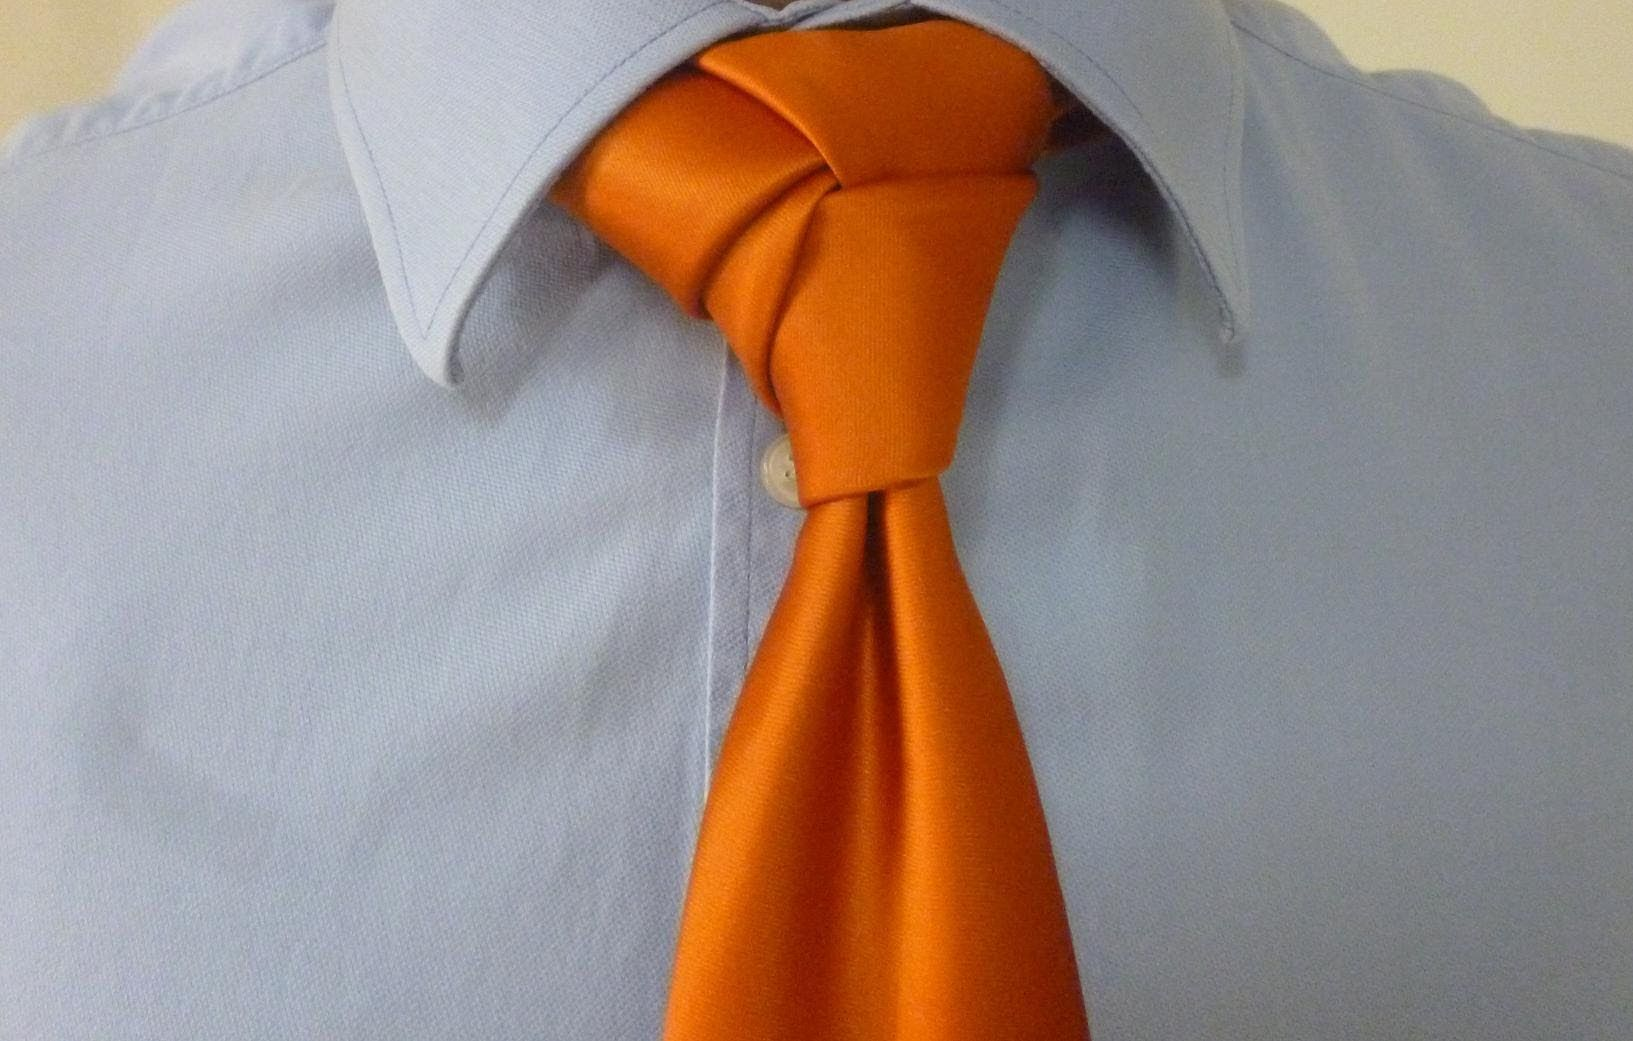 How To Tie The Rose Knot For Your Necktie Playlist Tutorial Knots Diagram Learning Ties Trinity